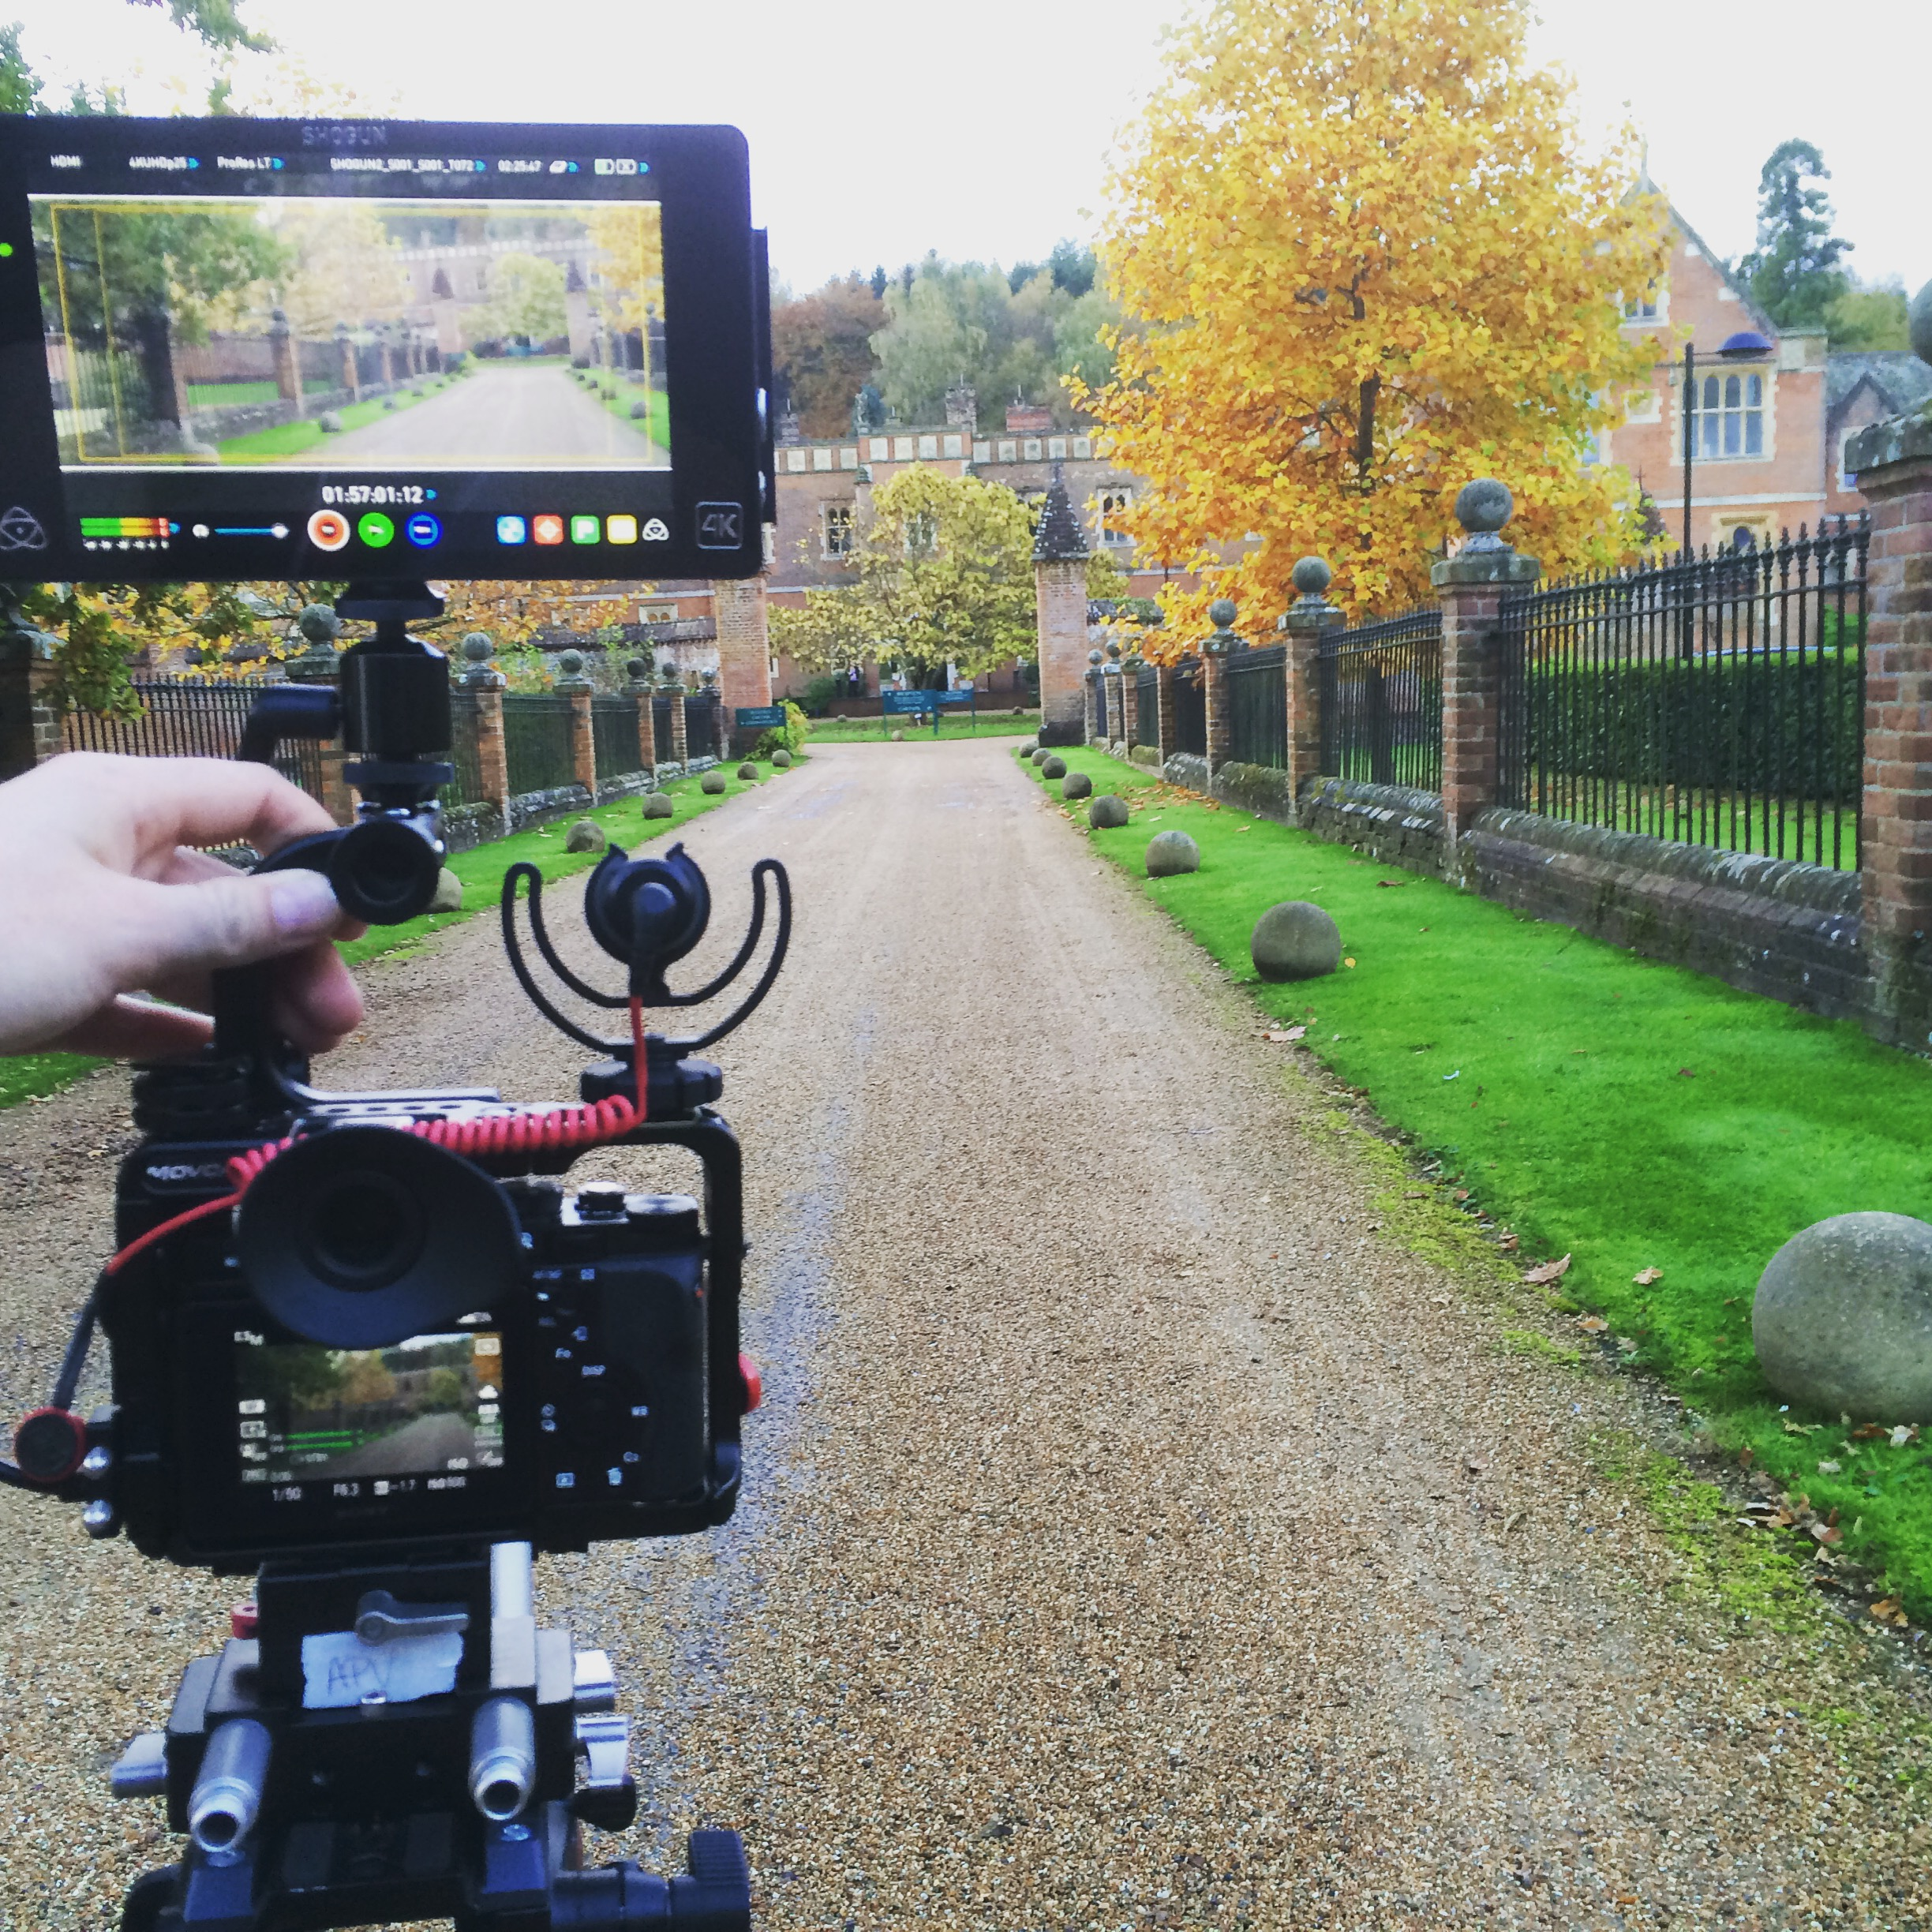 Adam Plowden Video using Sony A7s and Atomos Shogun